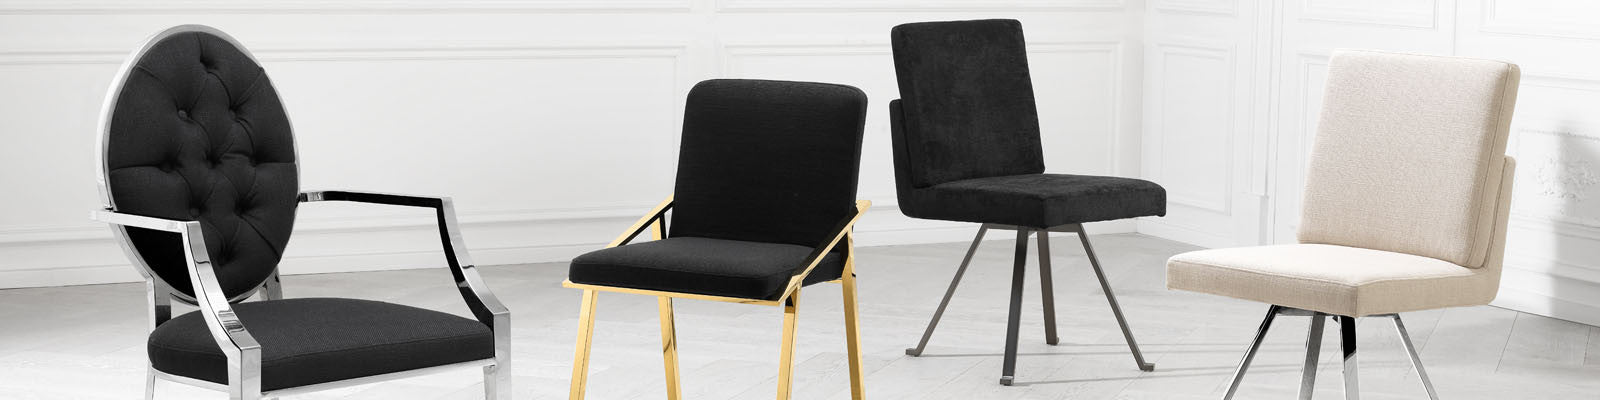 Dining Chairs | Eichholtz | OROA - Affordable Luxury Furniture Online